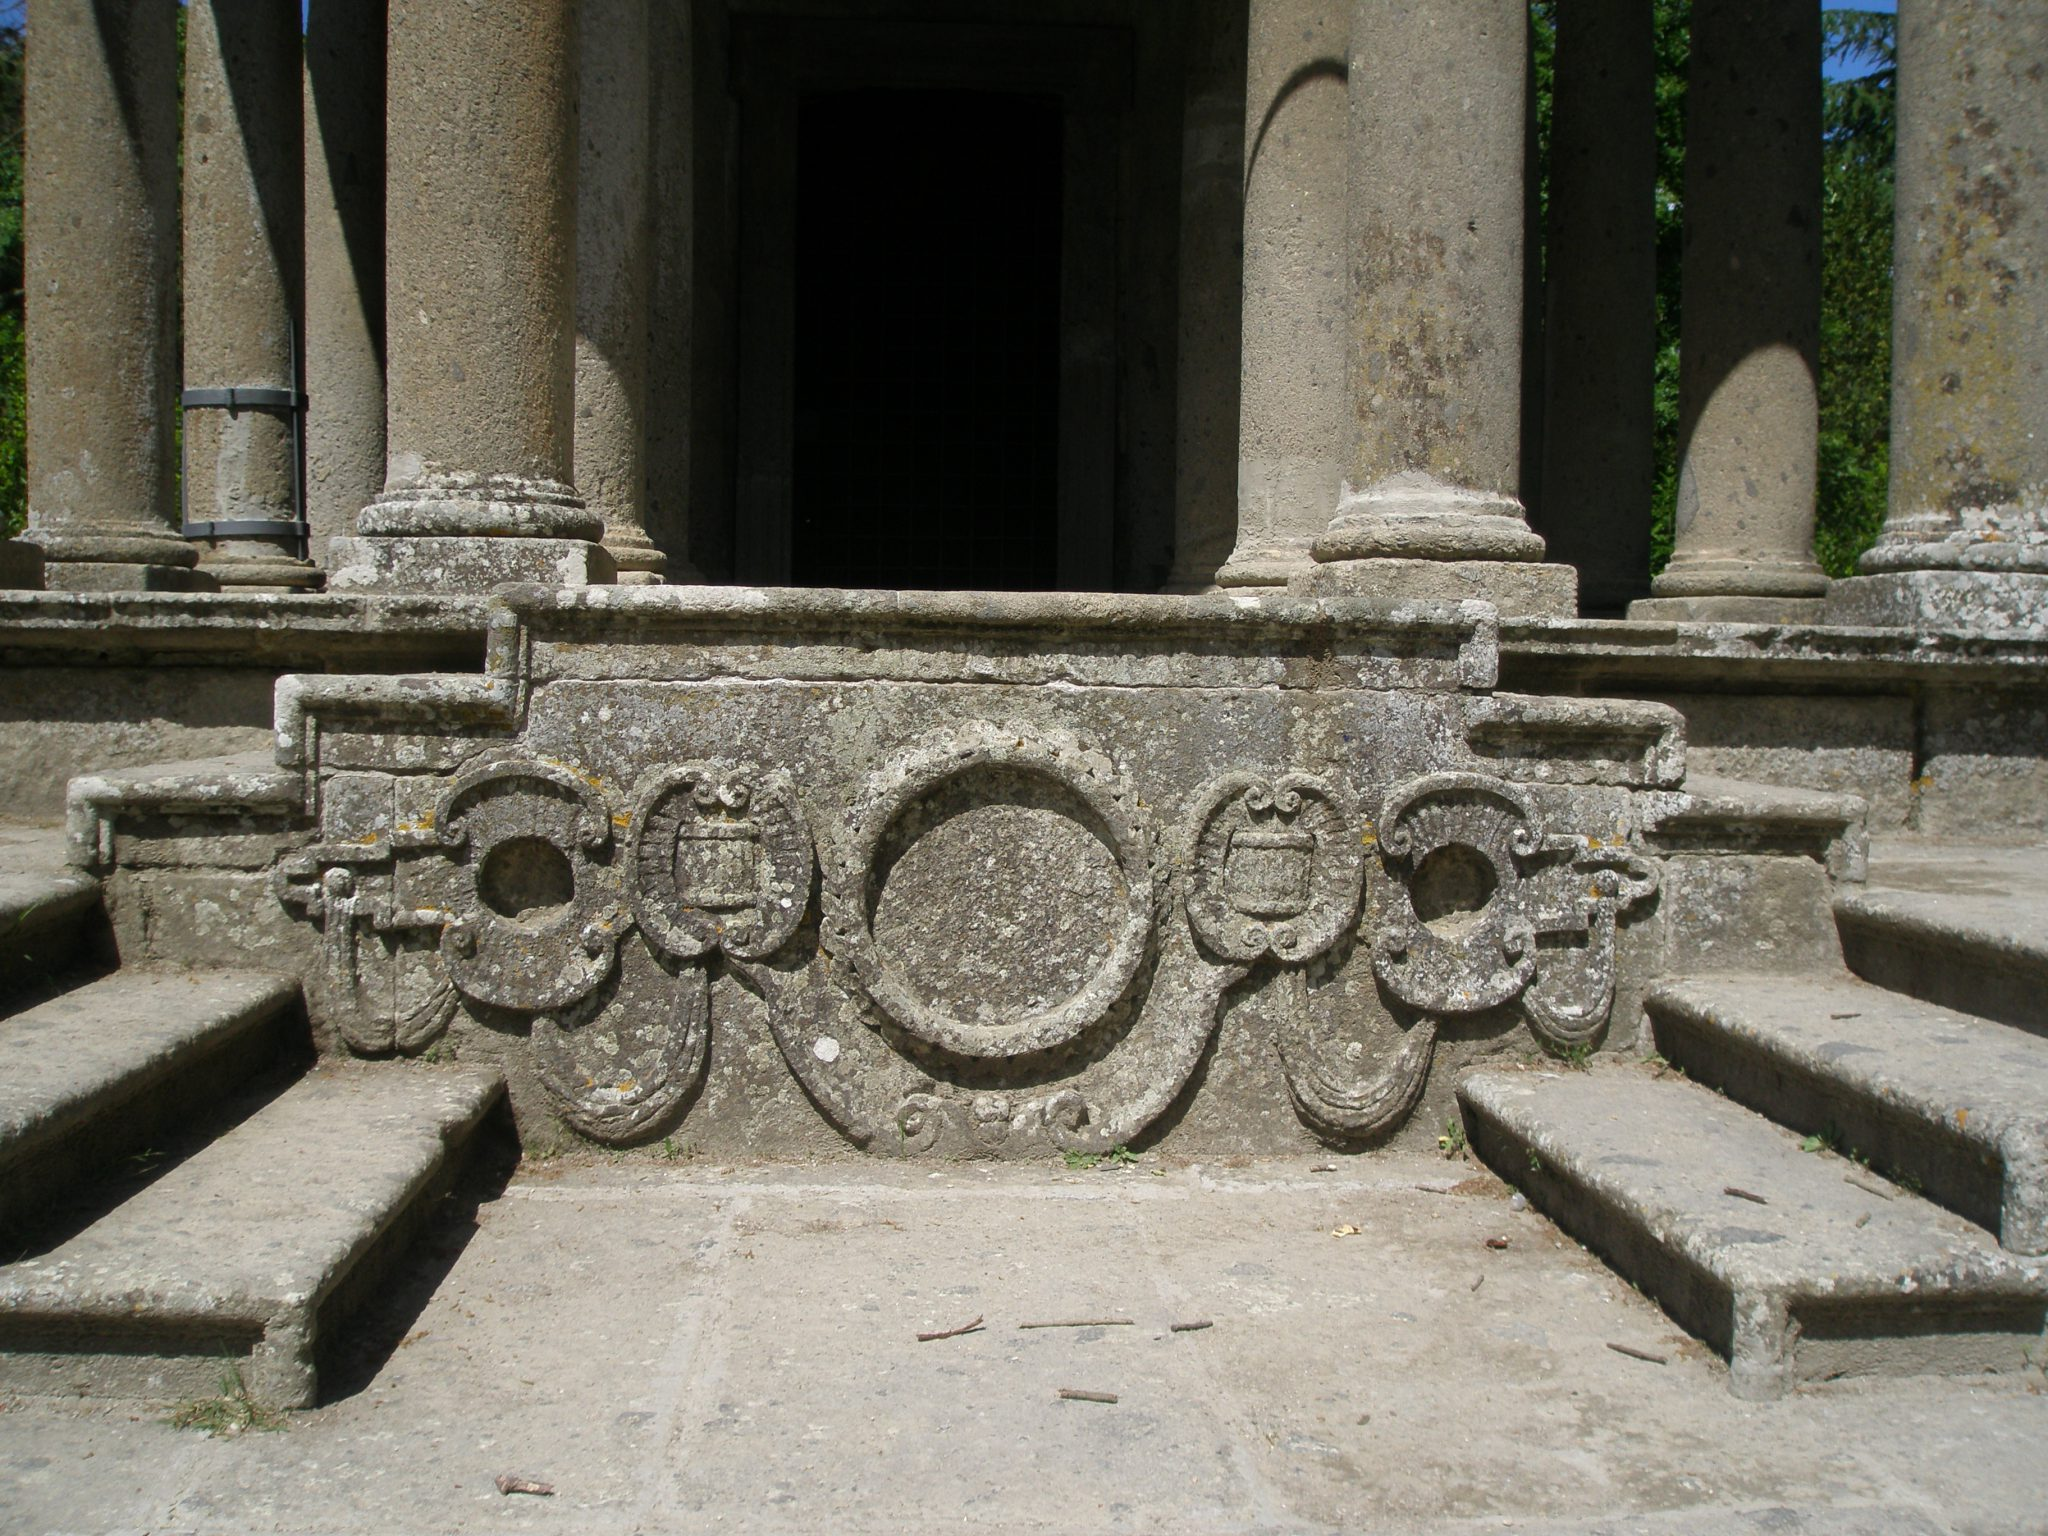 The Temple was carved from Tufa Stone, found on site. These are the front steps.